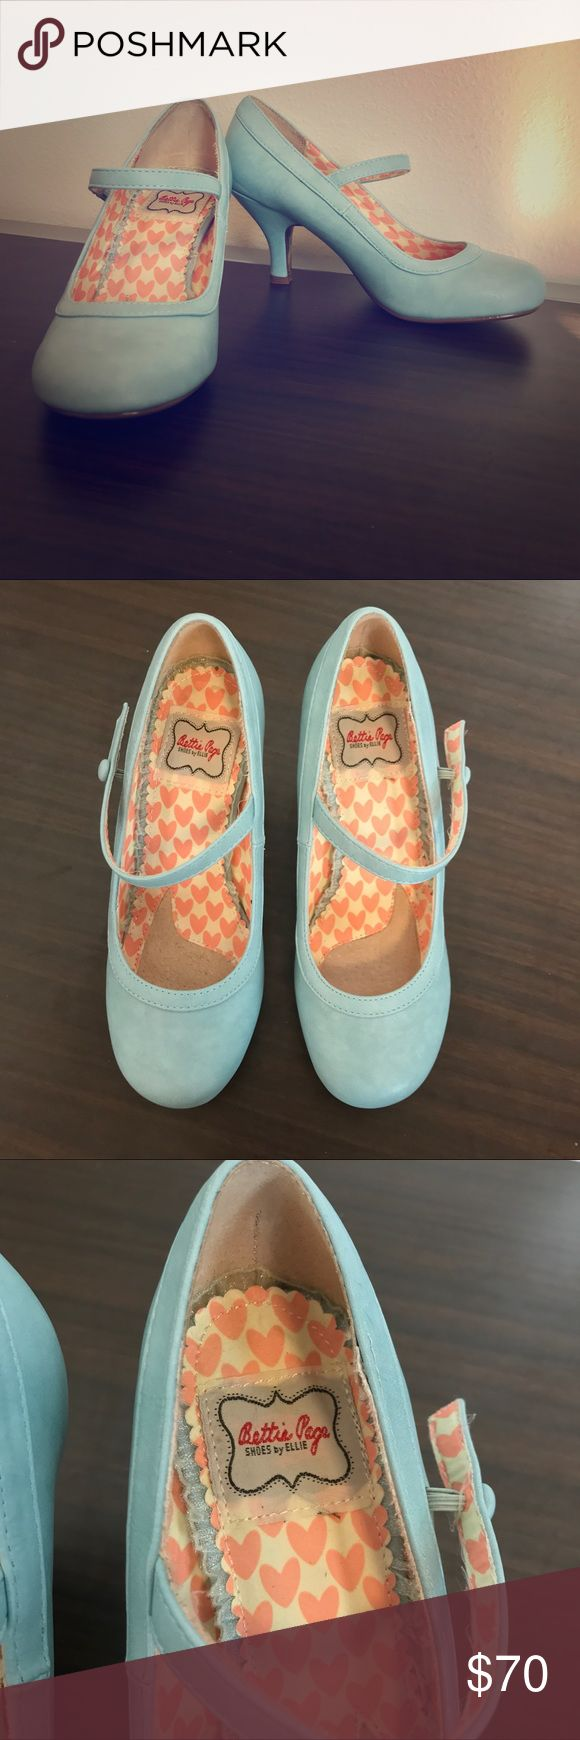 ❤️ Bettie Page Blue Retro Mary Jane Pumps ❤️ Barely worn, excellent condition. Size 6. Elastic band. 3 in cute comfy Mary Jane - style pumps! Color is a pretty powder pastel blue. Leopard print bottoms. Bettie page brand. Bettie Page Shoes Heels